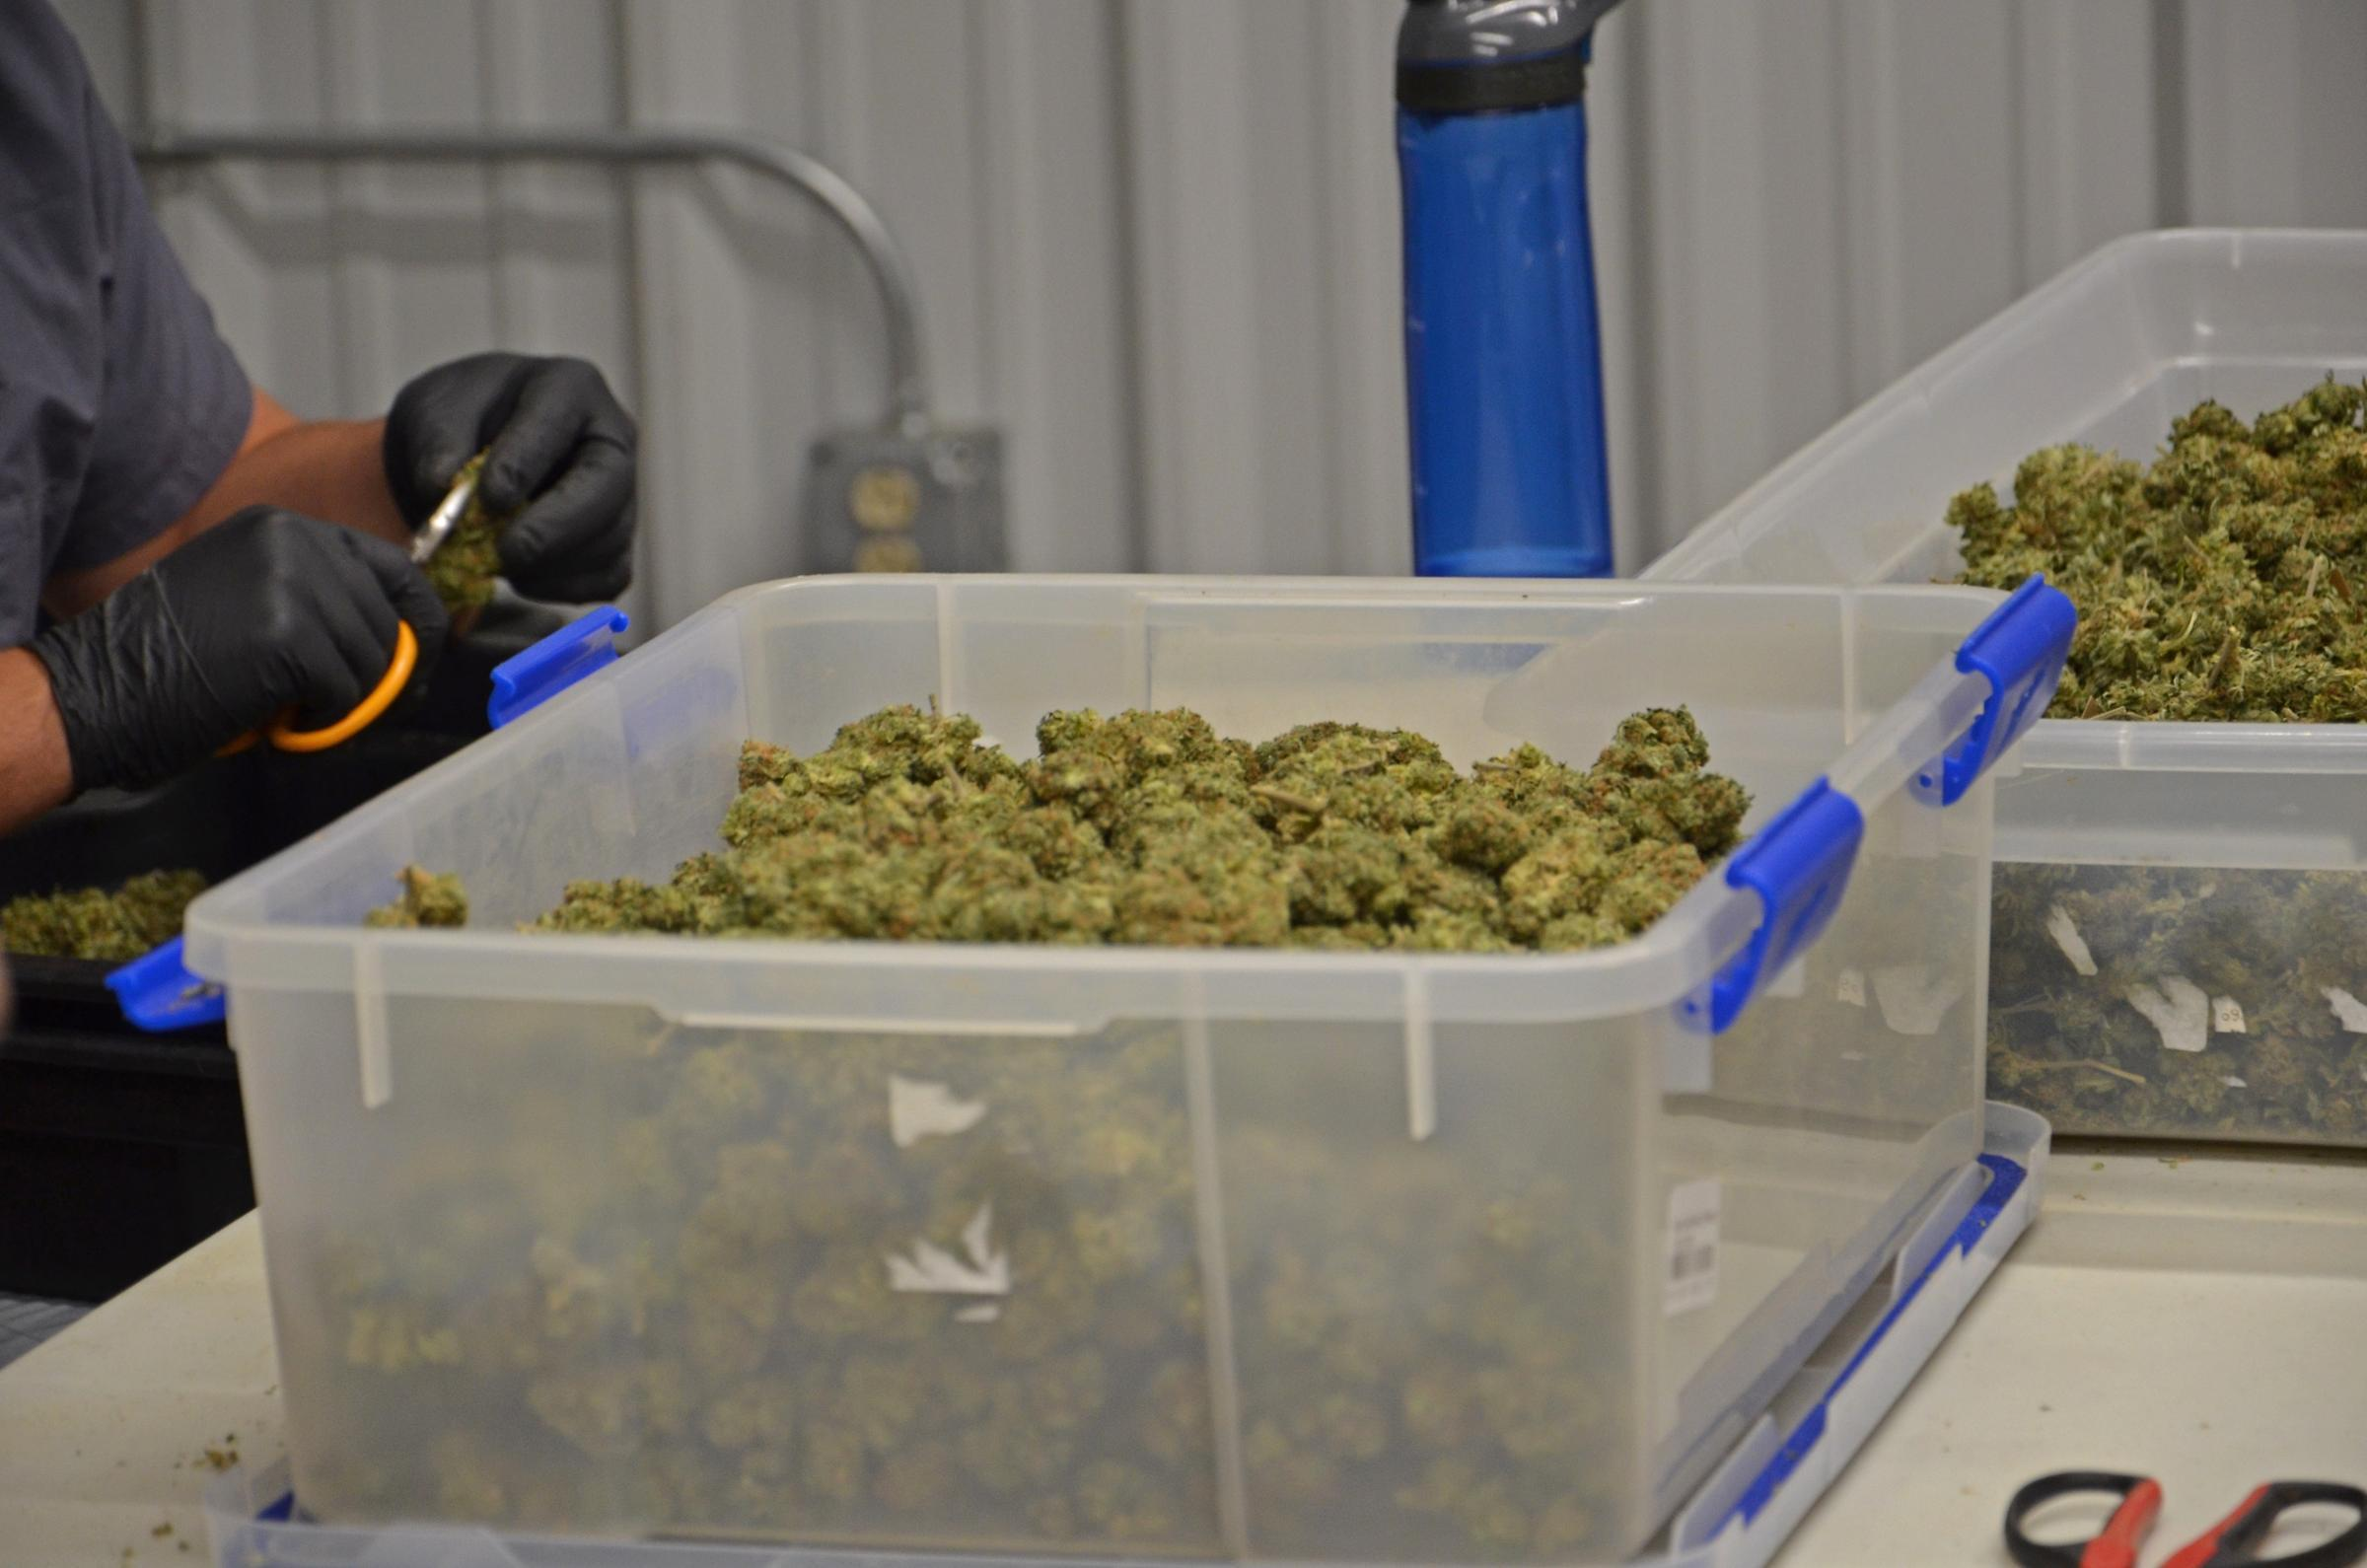 Illinois fulton county vermont - Buds Are Cleaned Before Being Sent Off For Processing